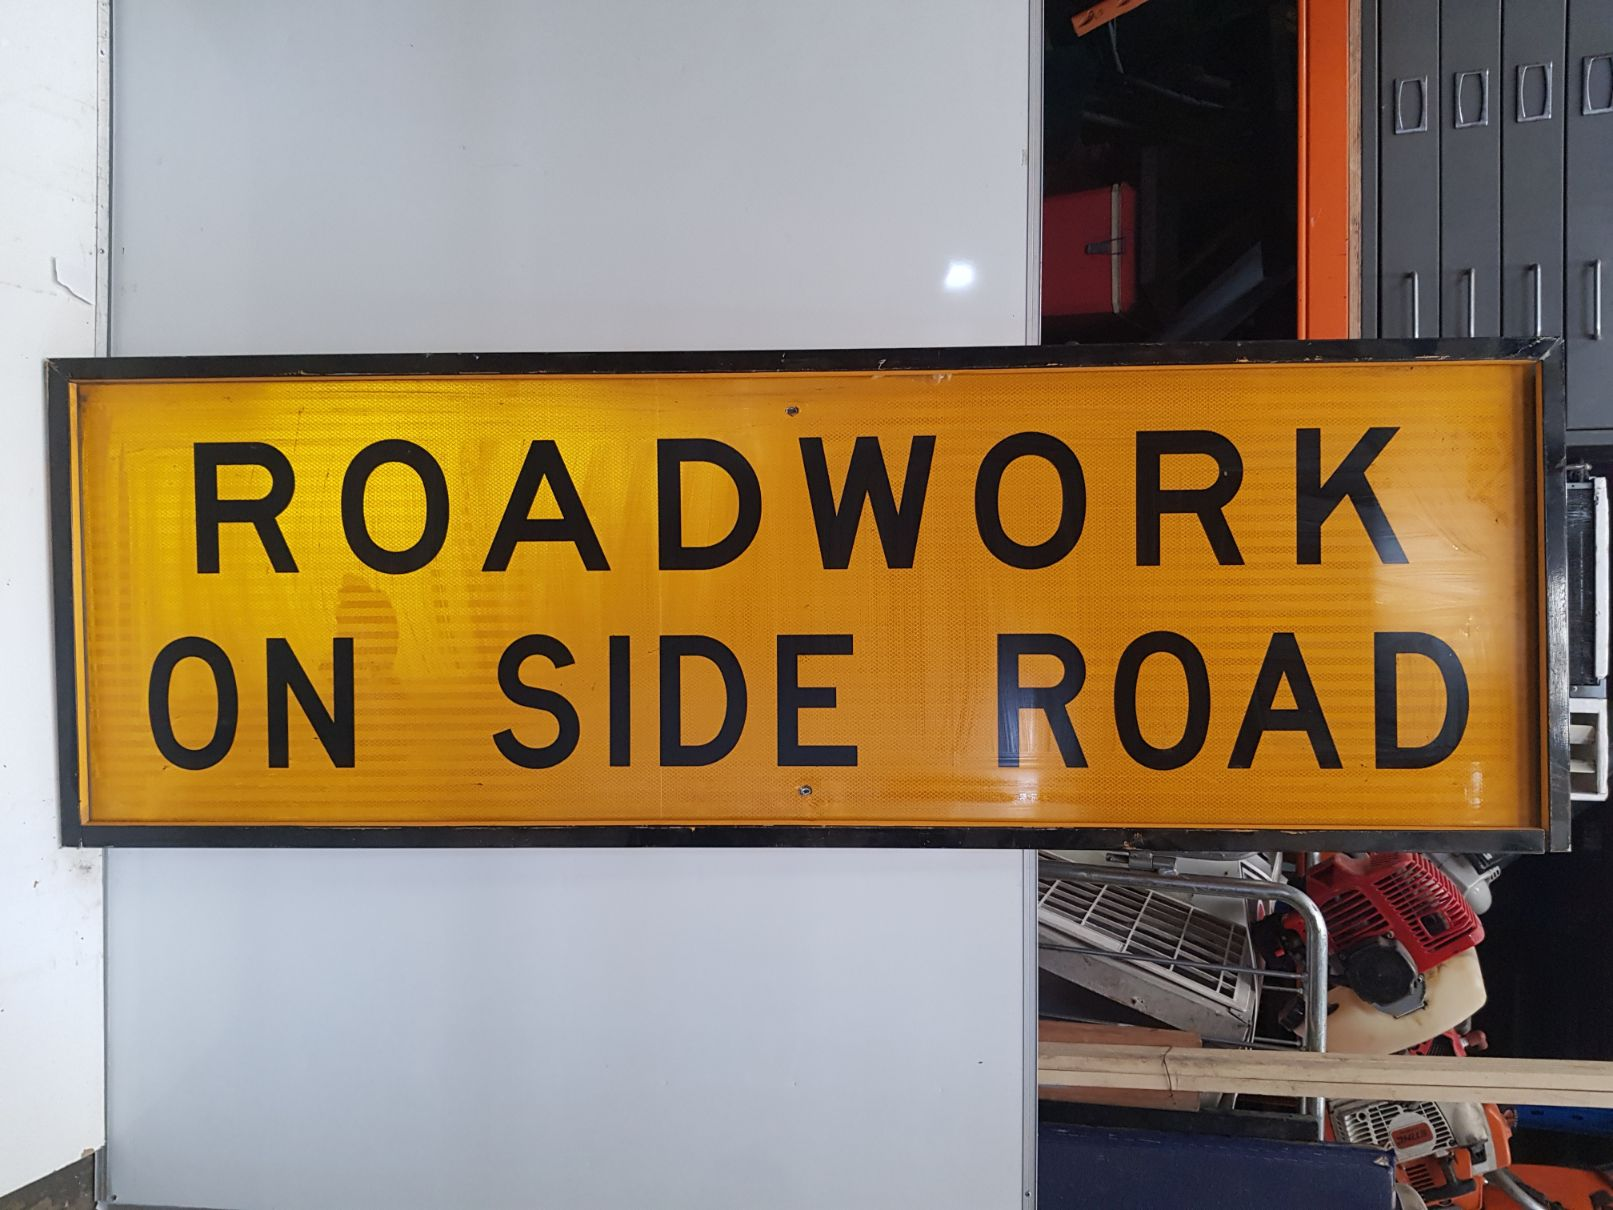 Roadwork On Side Road Boxed Edge Sign.jpg